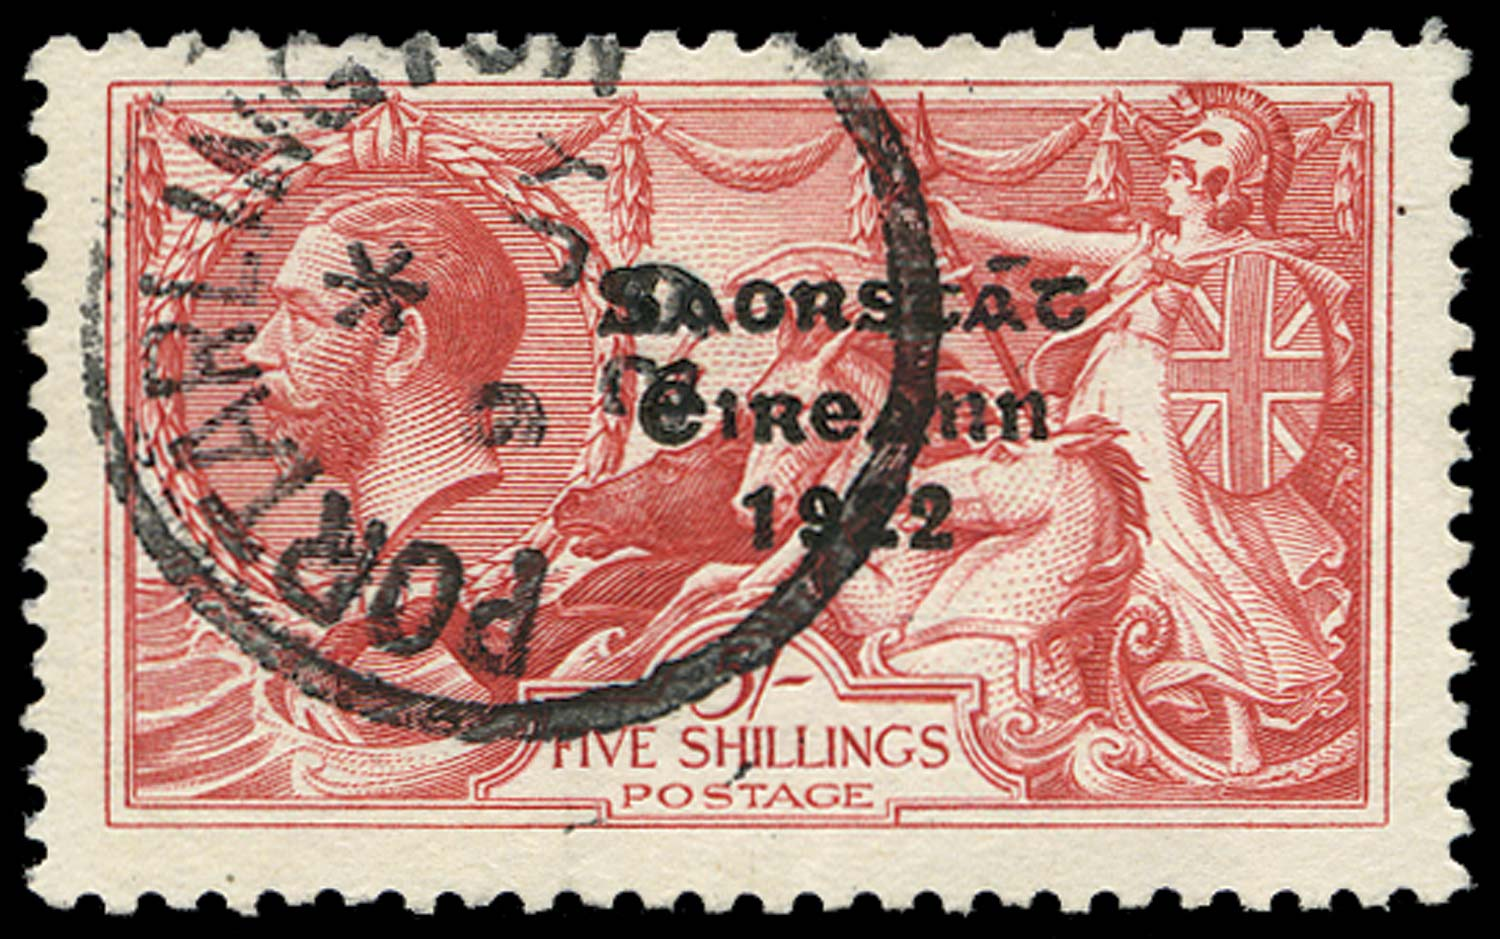 IRELAND 1925  SG87c Used 5s Flat accent on A